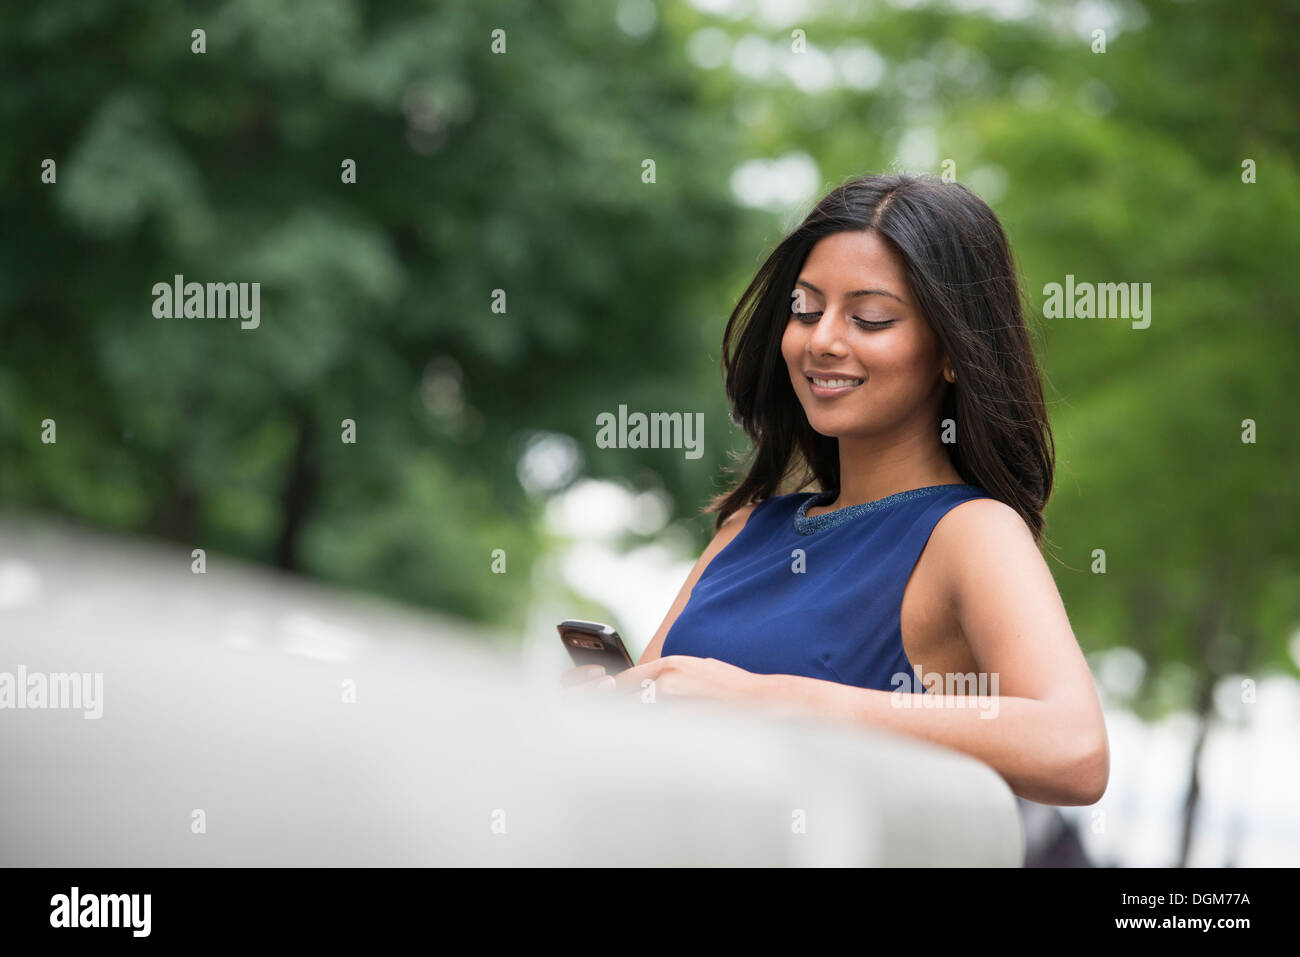 Business people. A woman with long black hair wearing a blue dress. - Stock Image